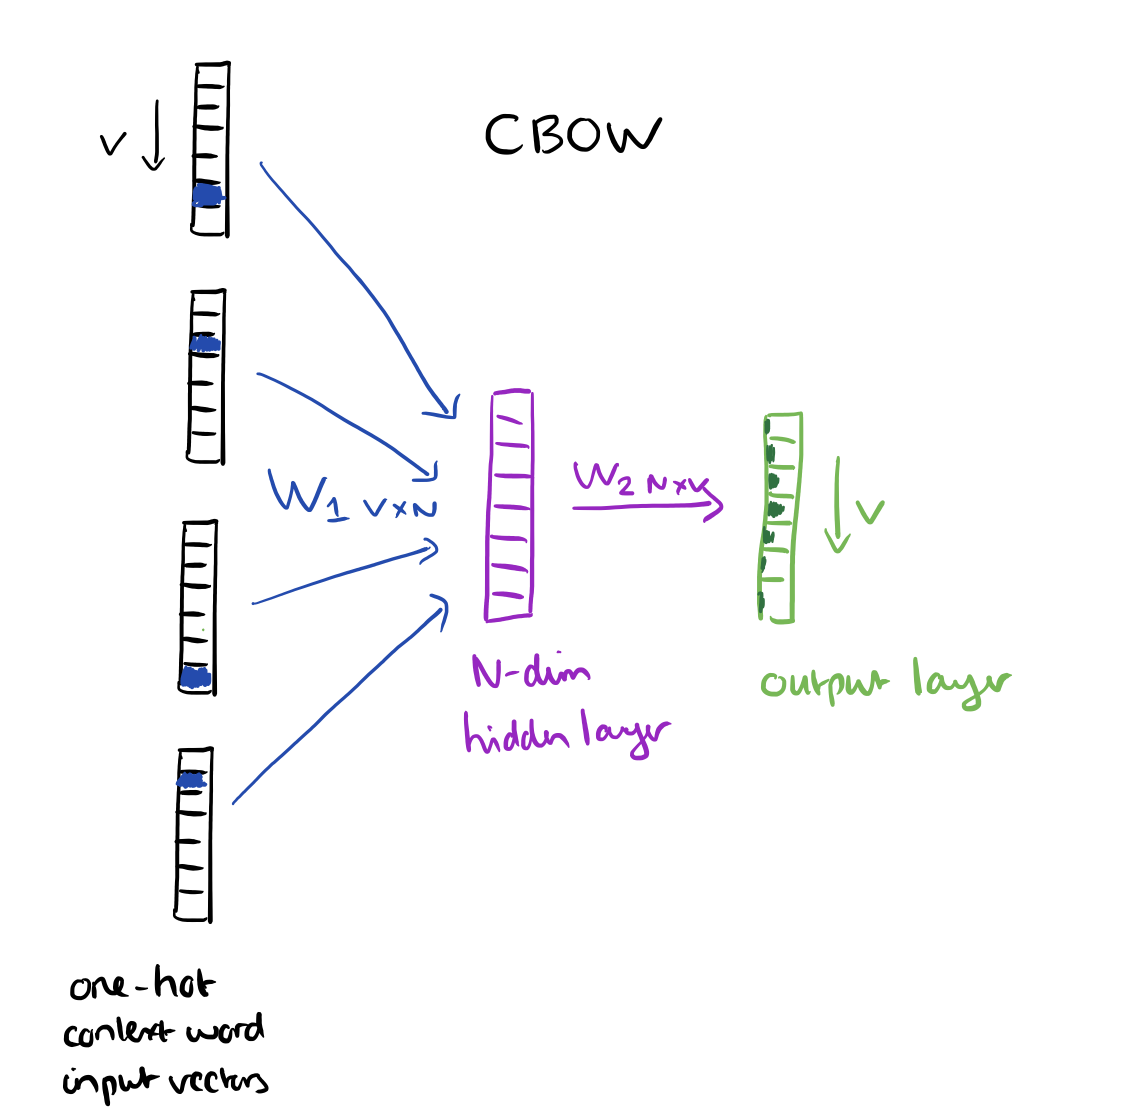 word2vec CBOW – the morning paper